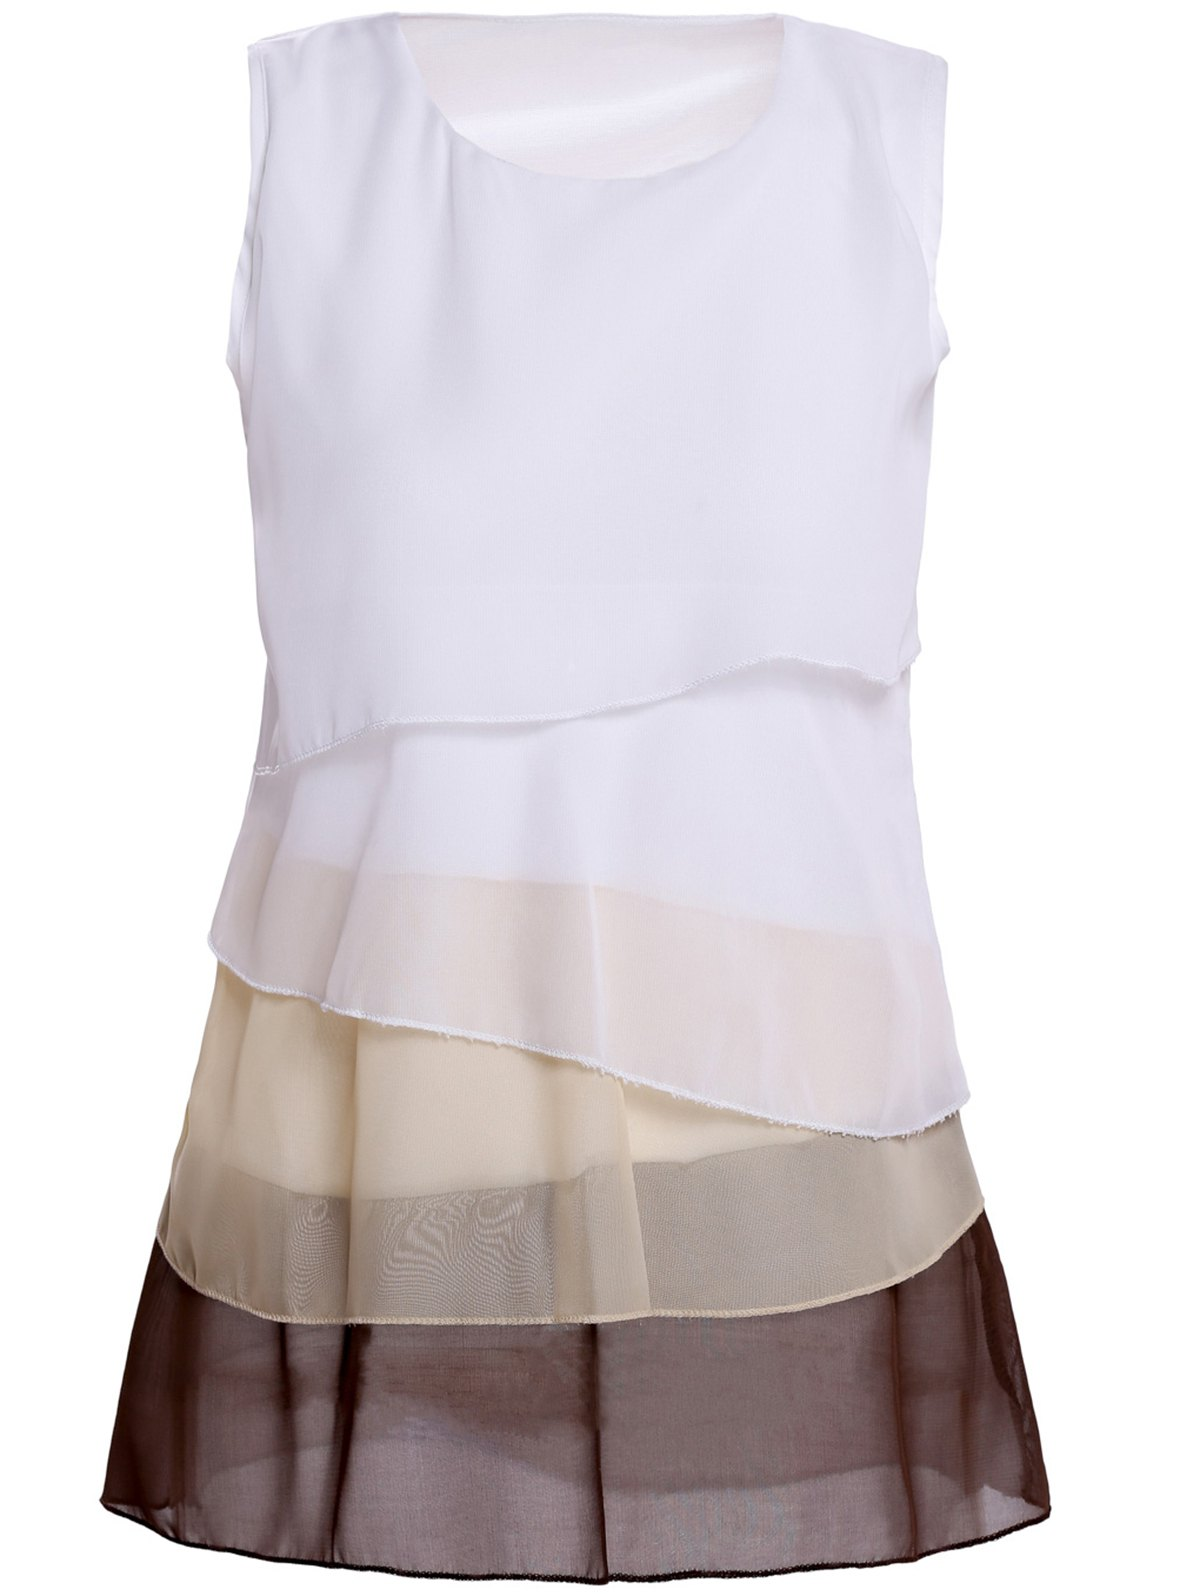 Stylish Scoop Neck Sleeveless Color Block Tiered Blouse For Women